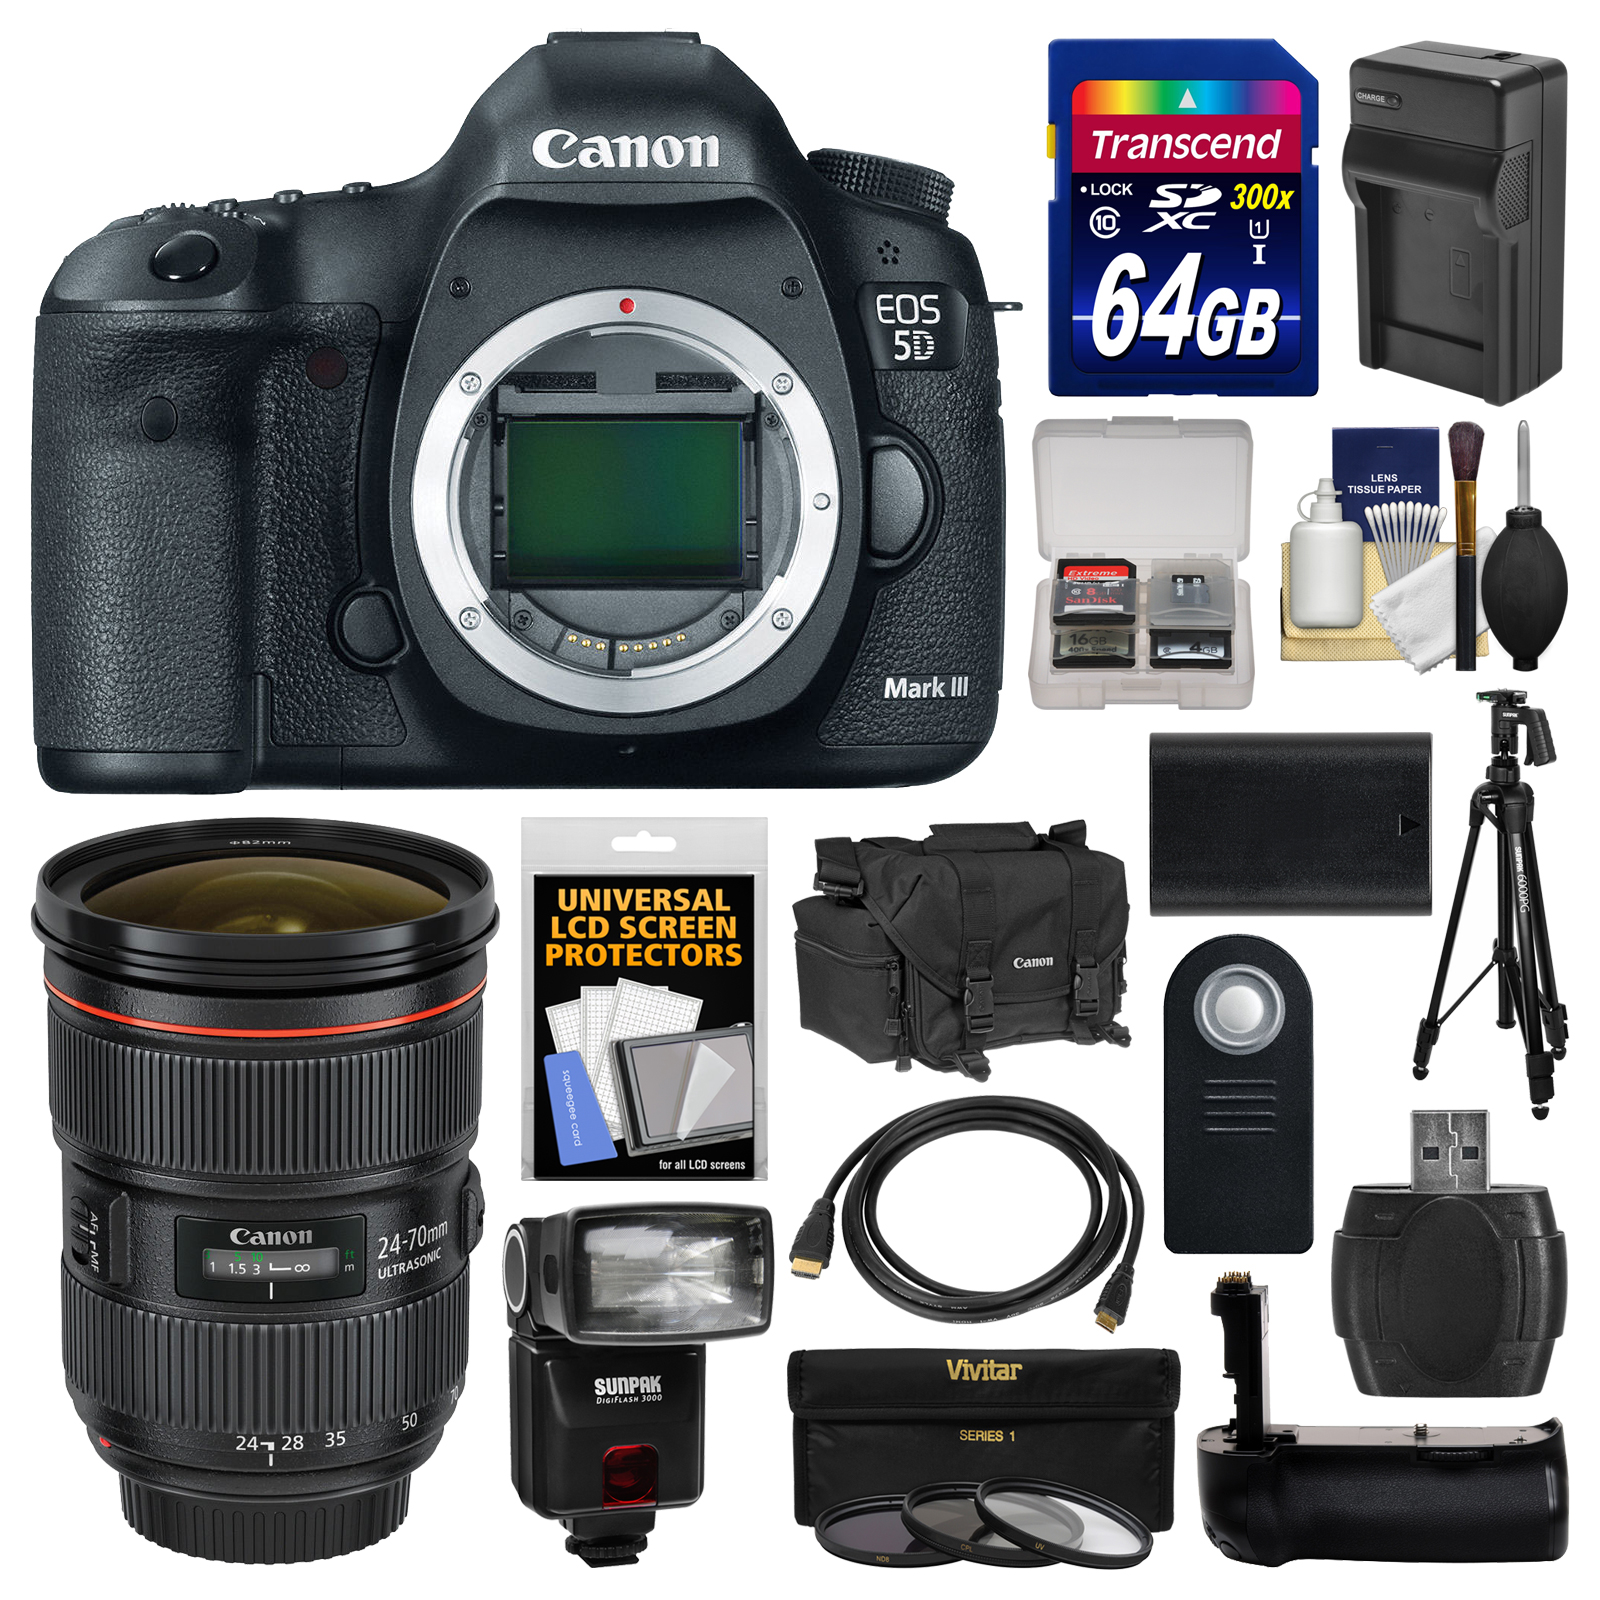 Canon EOS 5D Mark III Digital SLR Camera Body with 24-70mm f 2.8 L Lens + 64GB Card + Case + Flash + Battery Charger +... by Canon